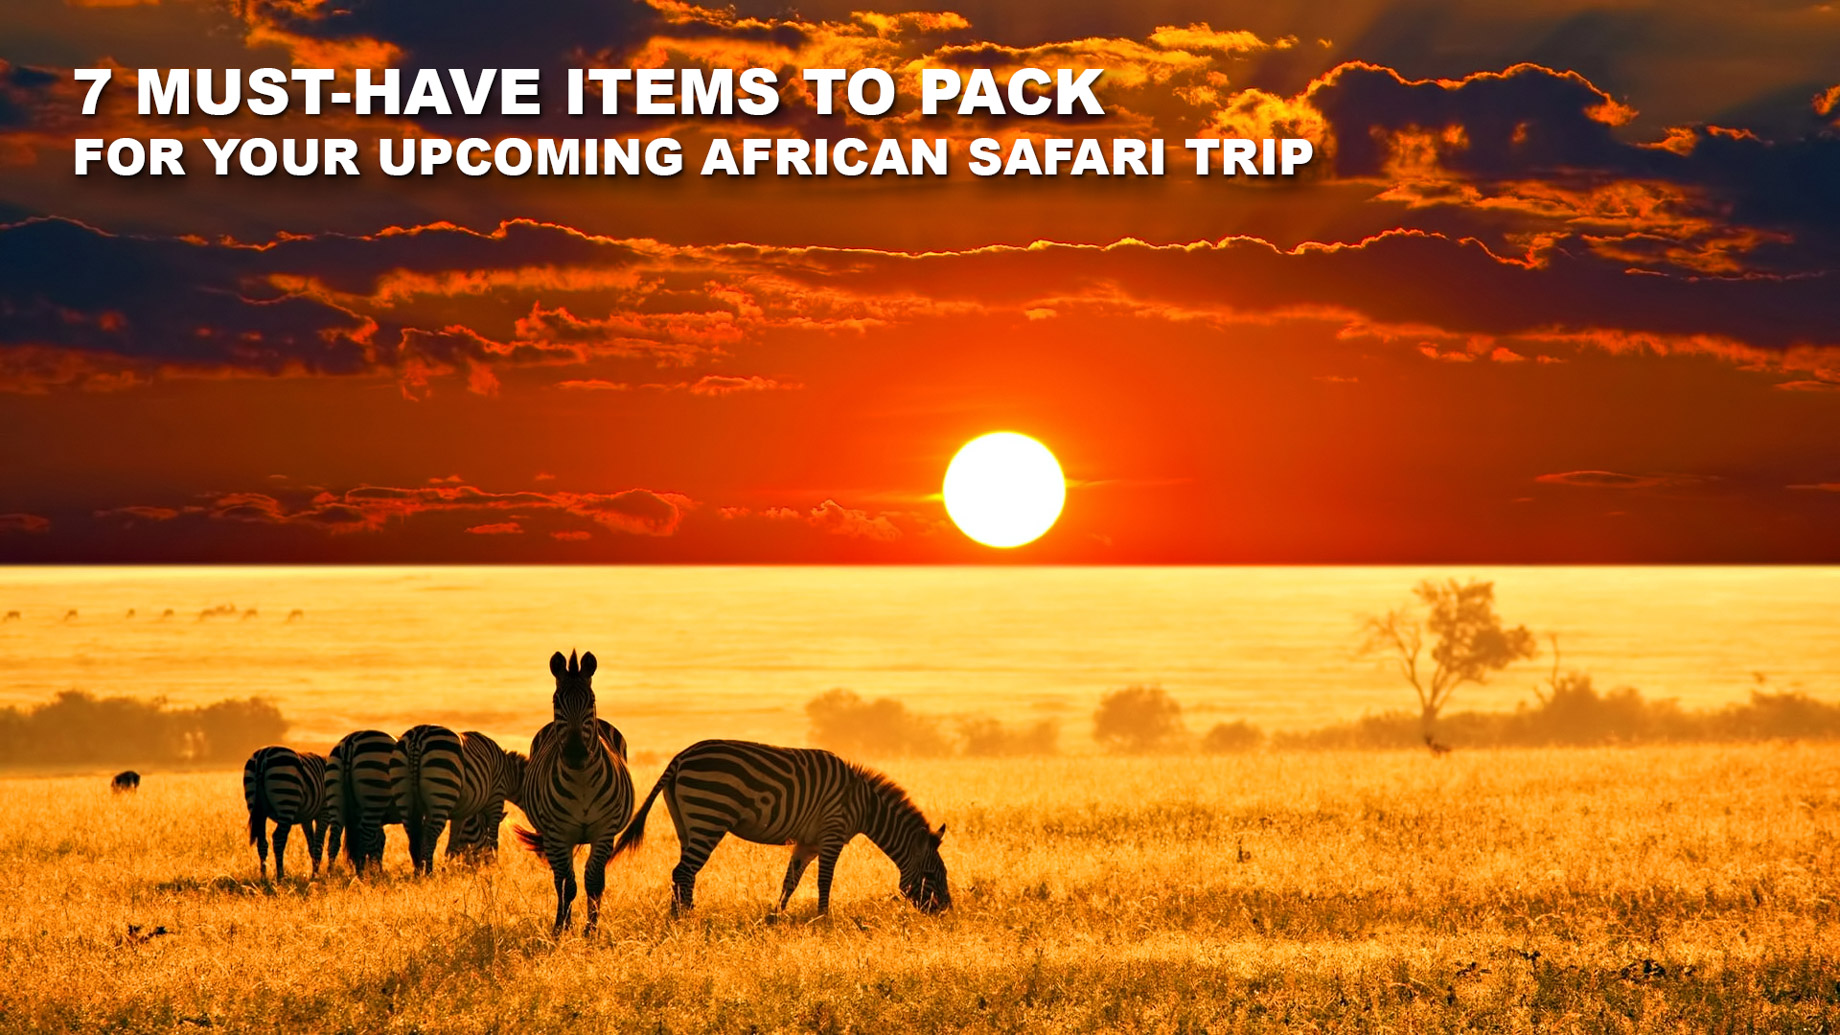 7 Must-Have Items to Pack for Your Upcoming African Safari Trip